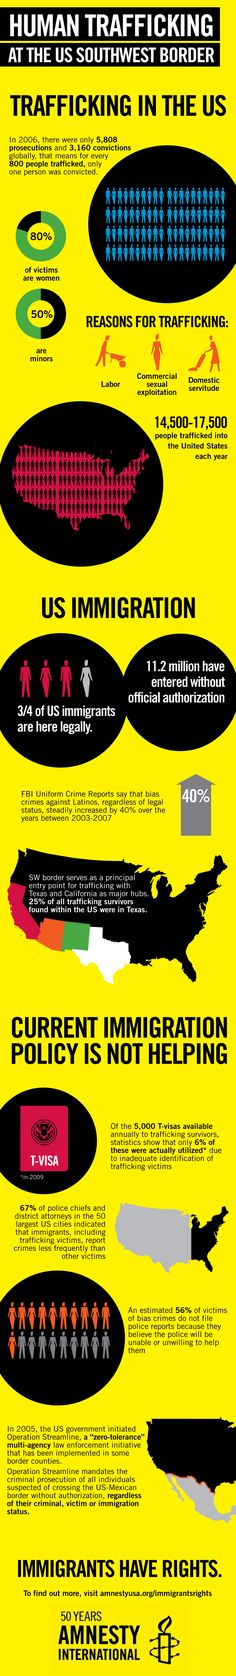 Human Trafficking and Immigration: 14,500 - 17,500 people are trafficked into the US each year.